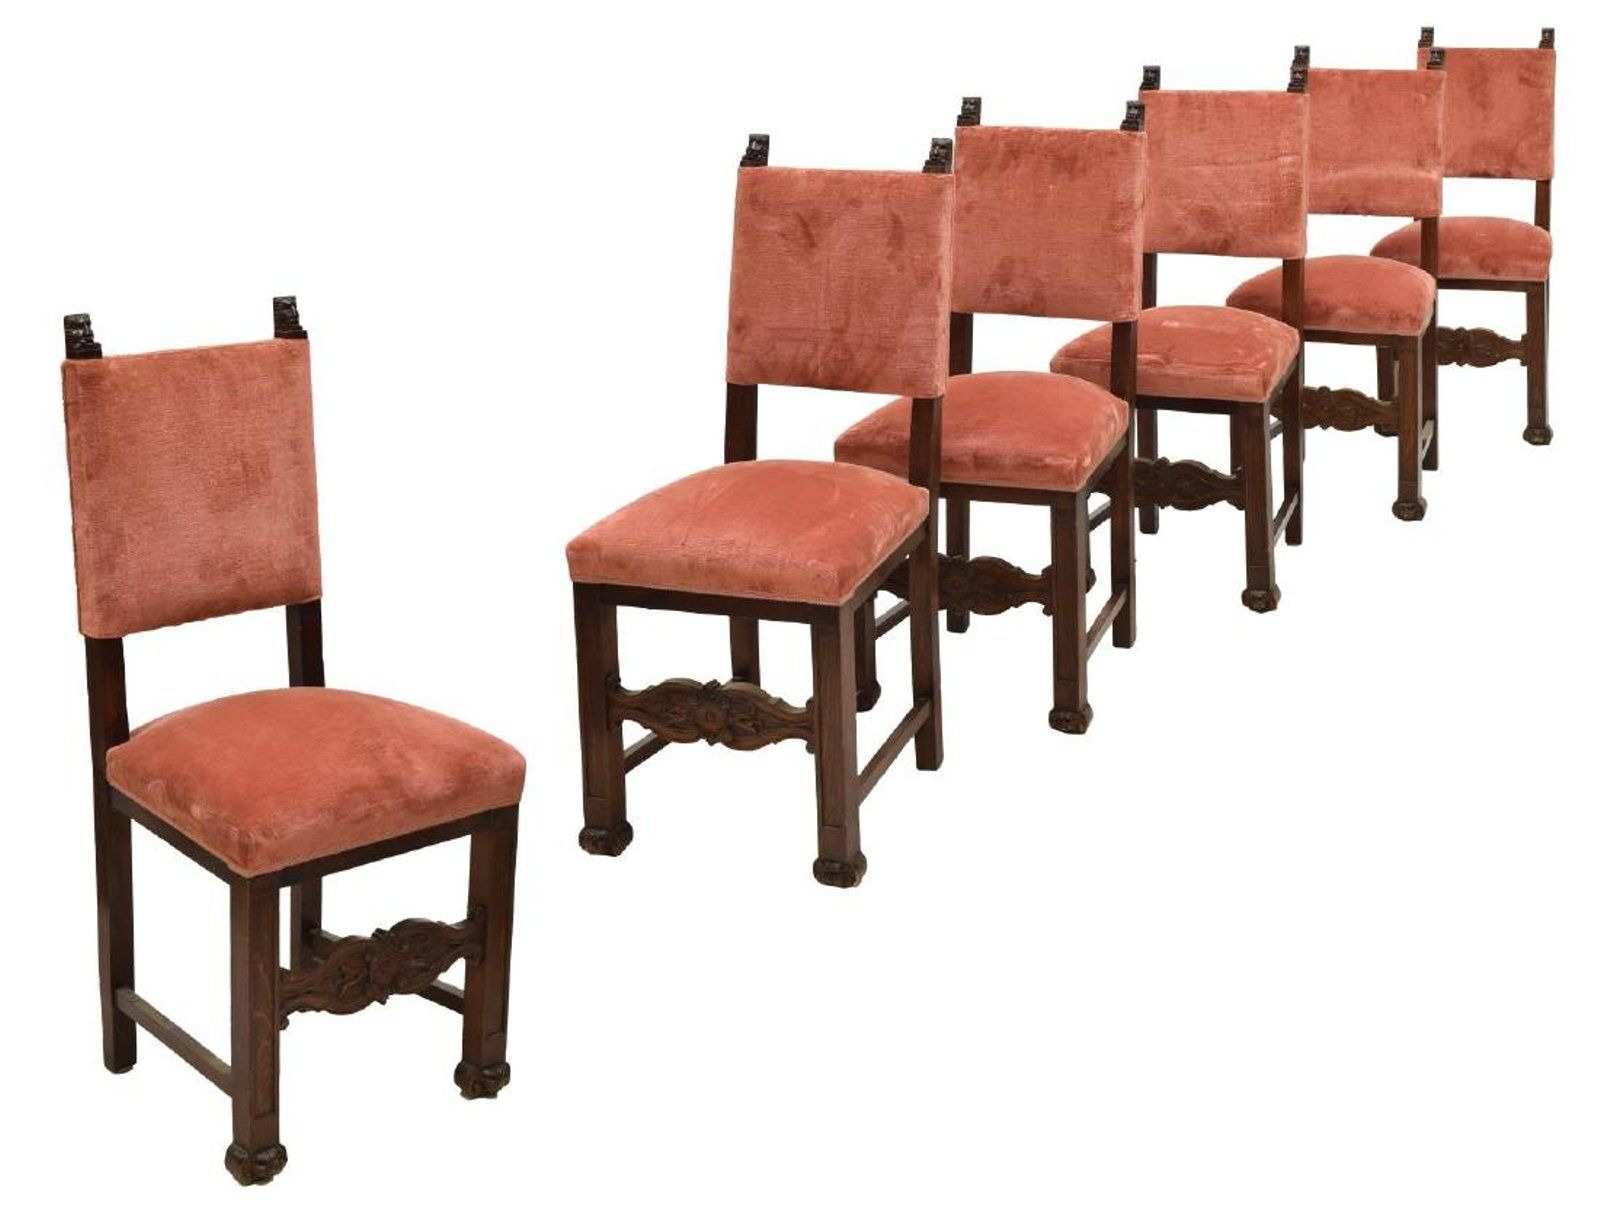 Antique wood dining tables  continental renaissance revival dining chairs  antique furniture